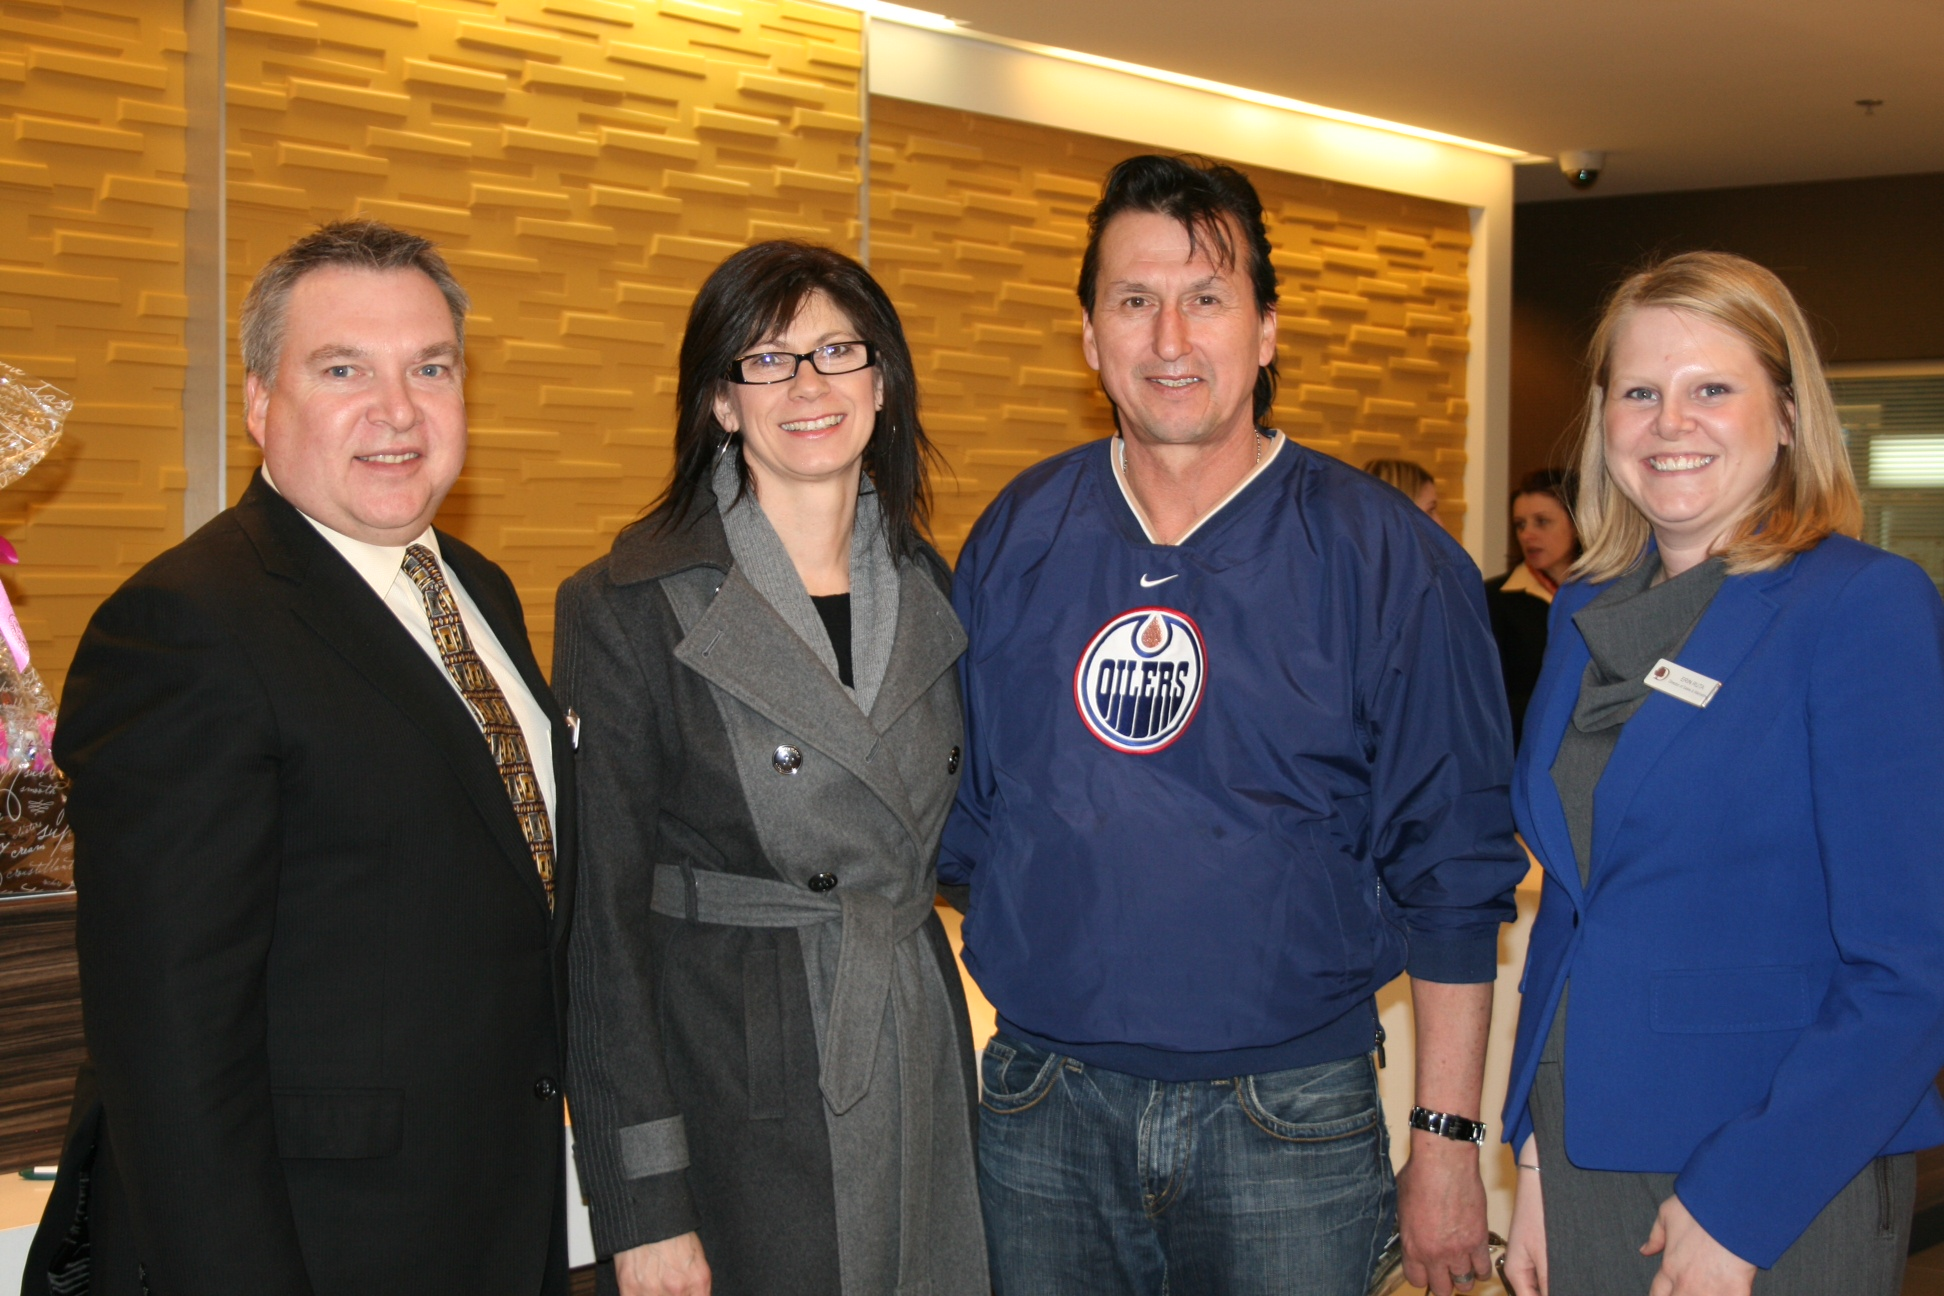 First guests of DoubleTree by Hilton™ West Edmonton